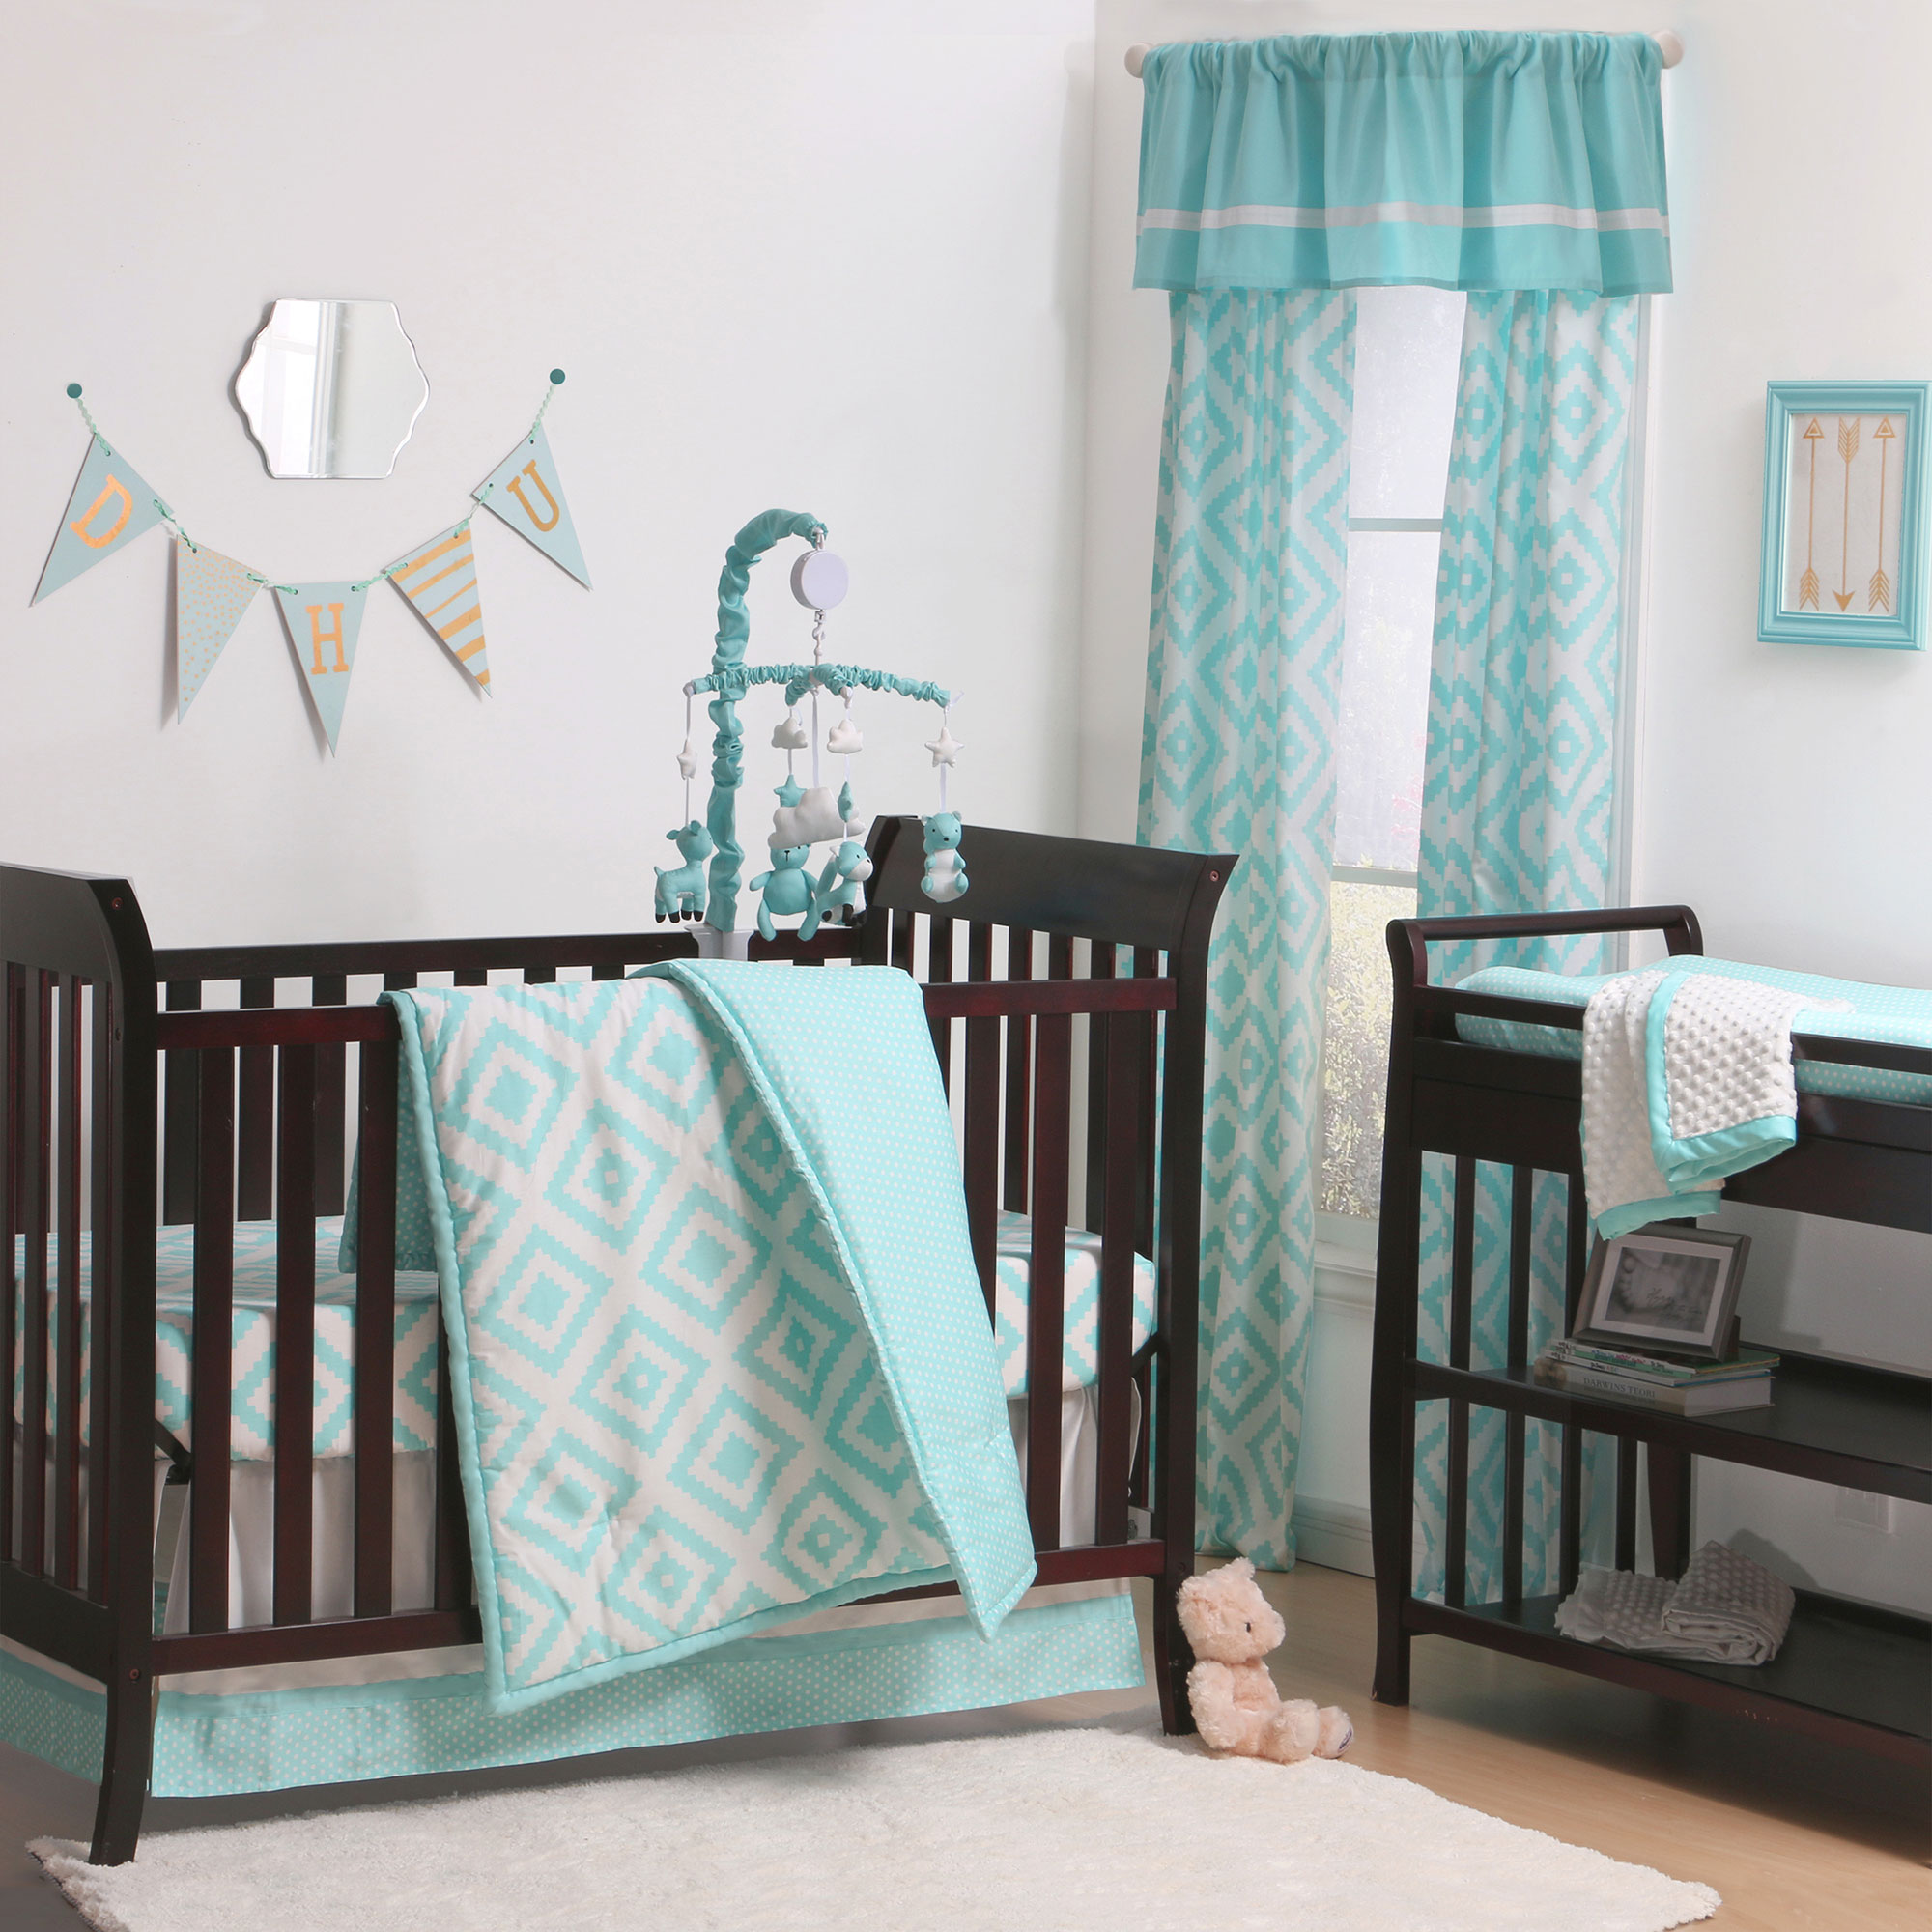 The Peanut Shell 4 Piece Baby Crib Bedding Set - Teal Turquoise Aqua Blue Diamond Geometric Dots - 100% Cotton Quilt, Dust Ruffle, Fitted Sheet, and Mobile